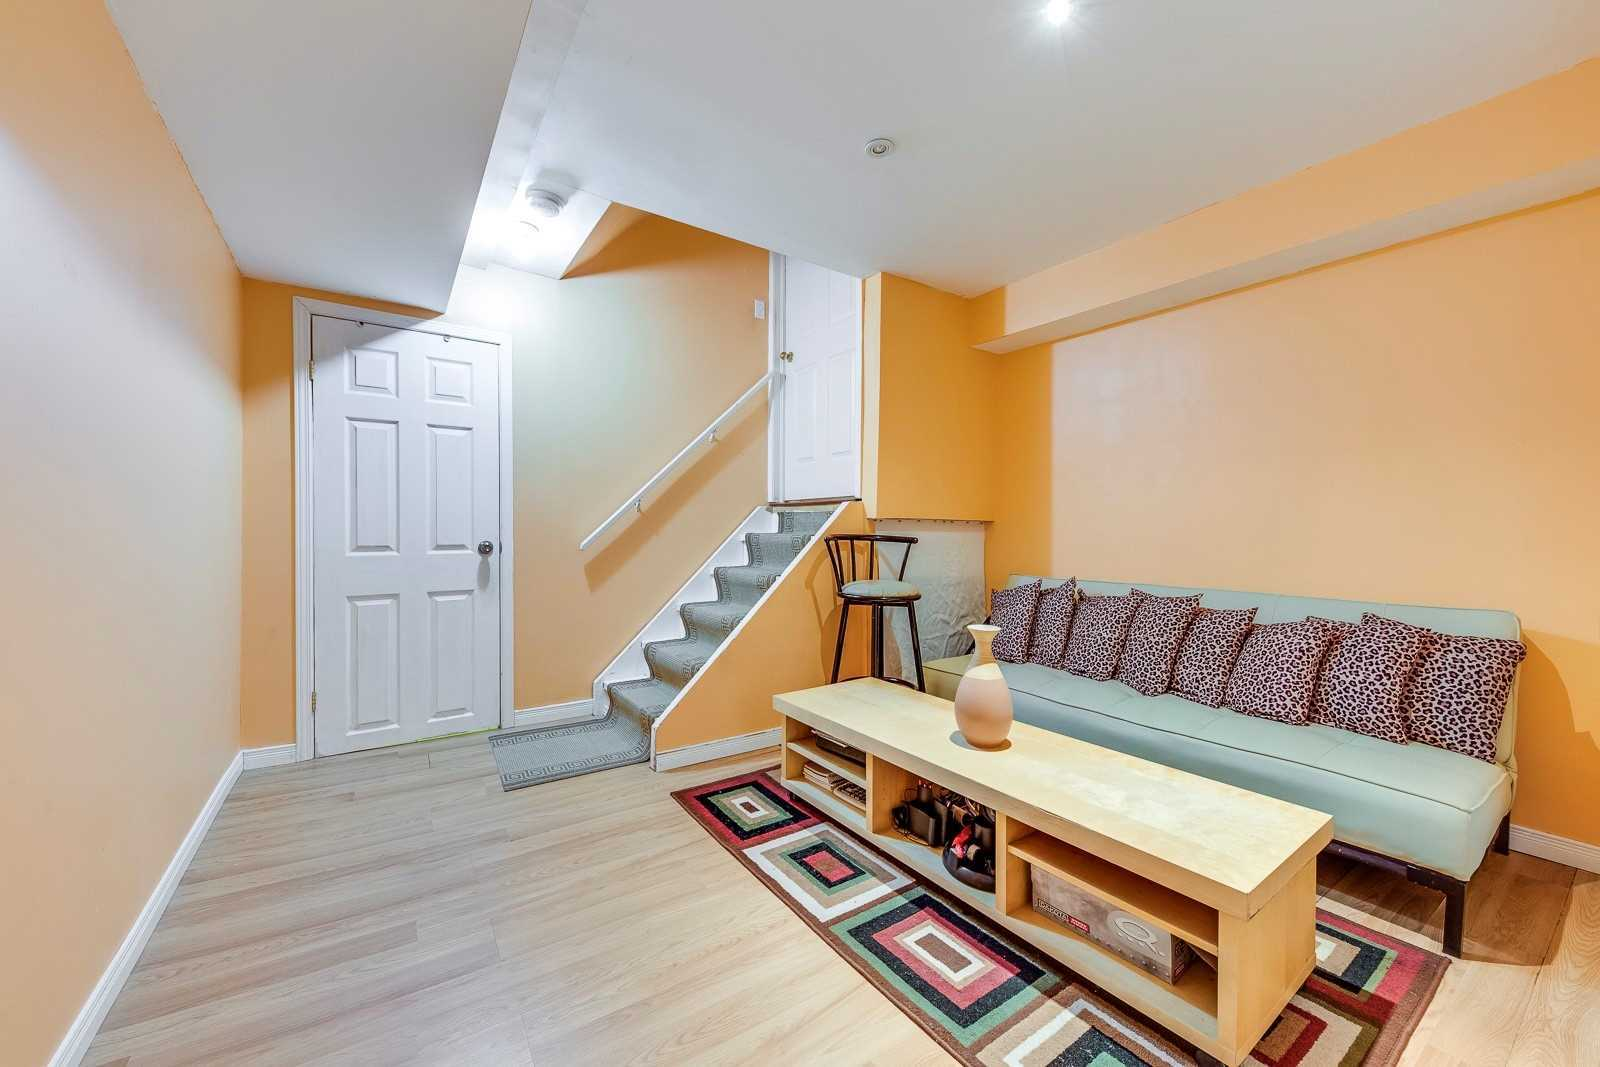 Image 7 of 20 showing inside of 3 Bedroom Att/Row/Twnhouse 2-Storey house for sale at 682 Edwards Ave, Milton L9T6B3